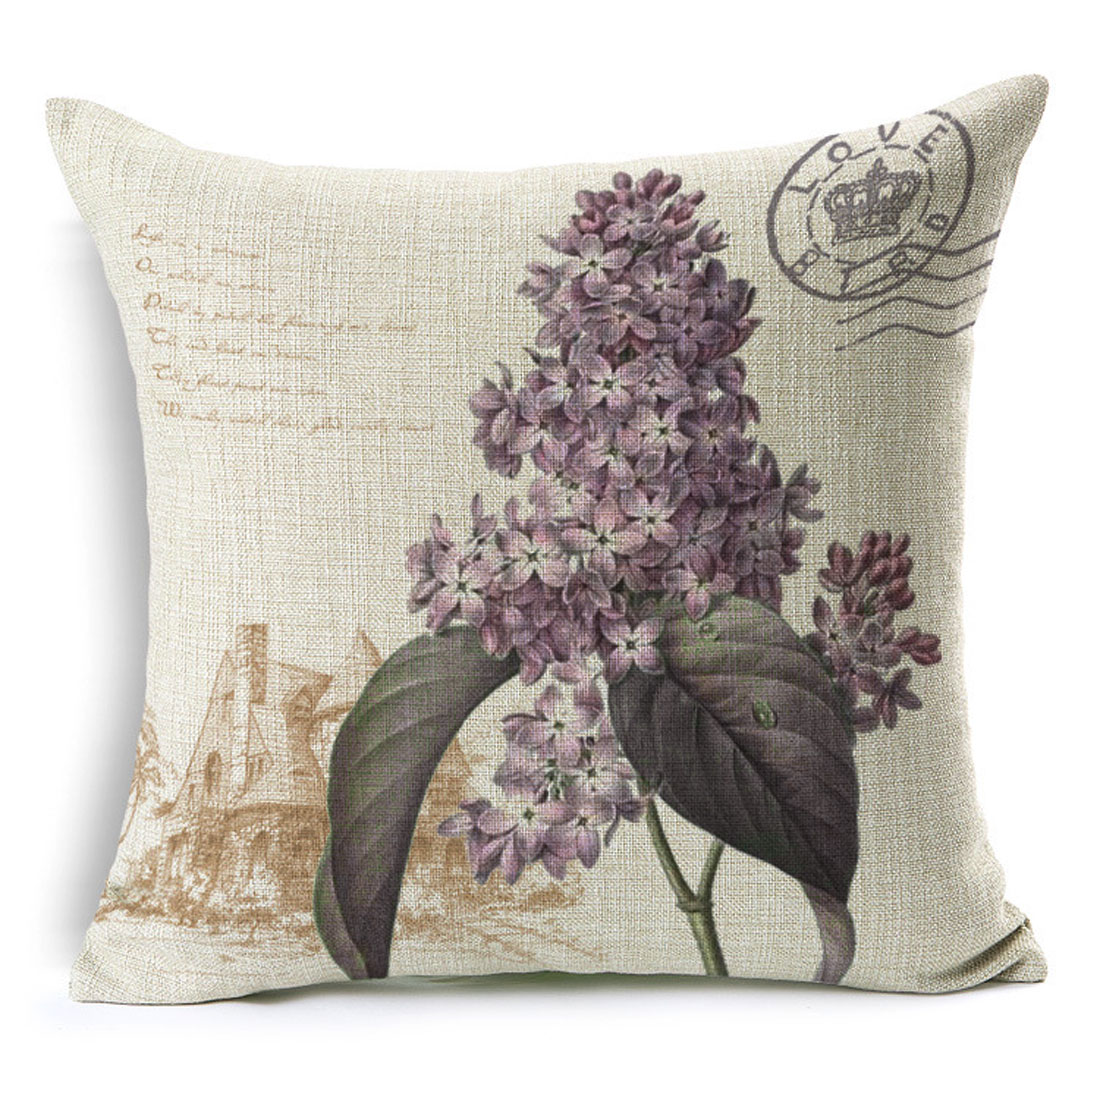 Household Sofa Couch Cotton Linen Hyacinth Pattern Waist Throw Cushion Cover Pillow Case